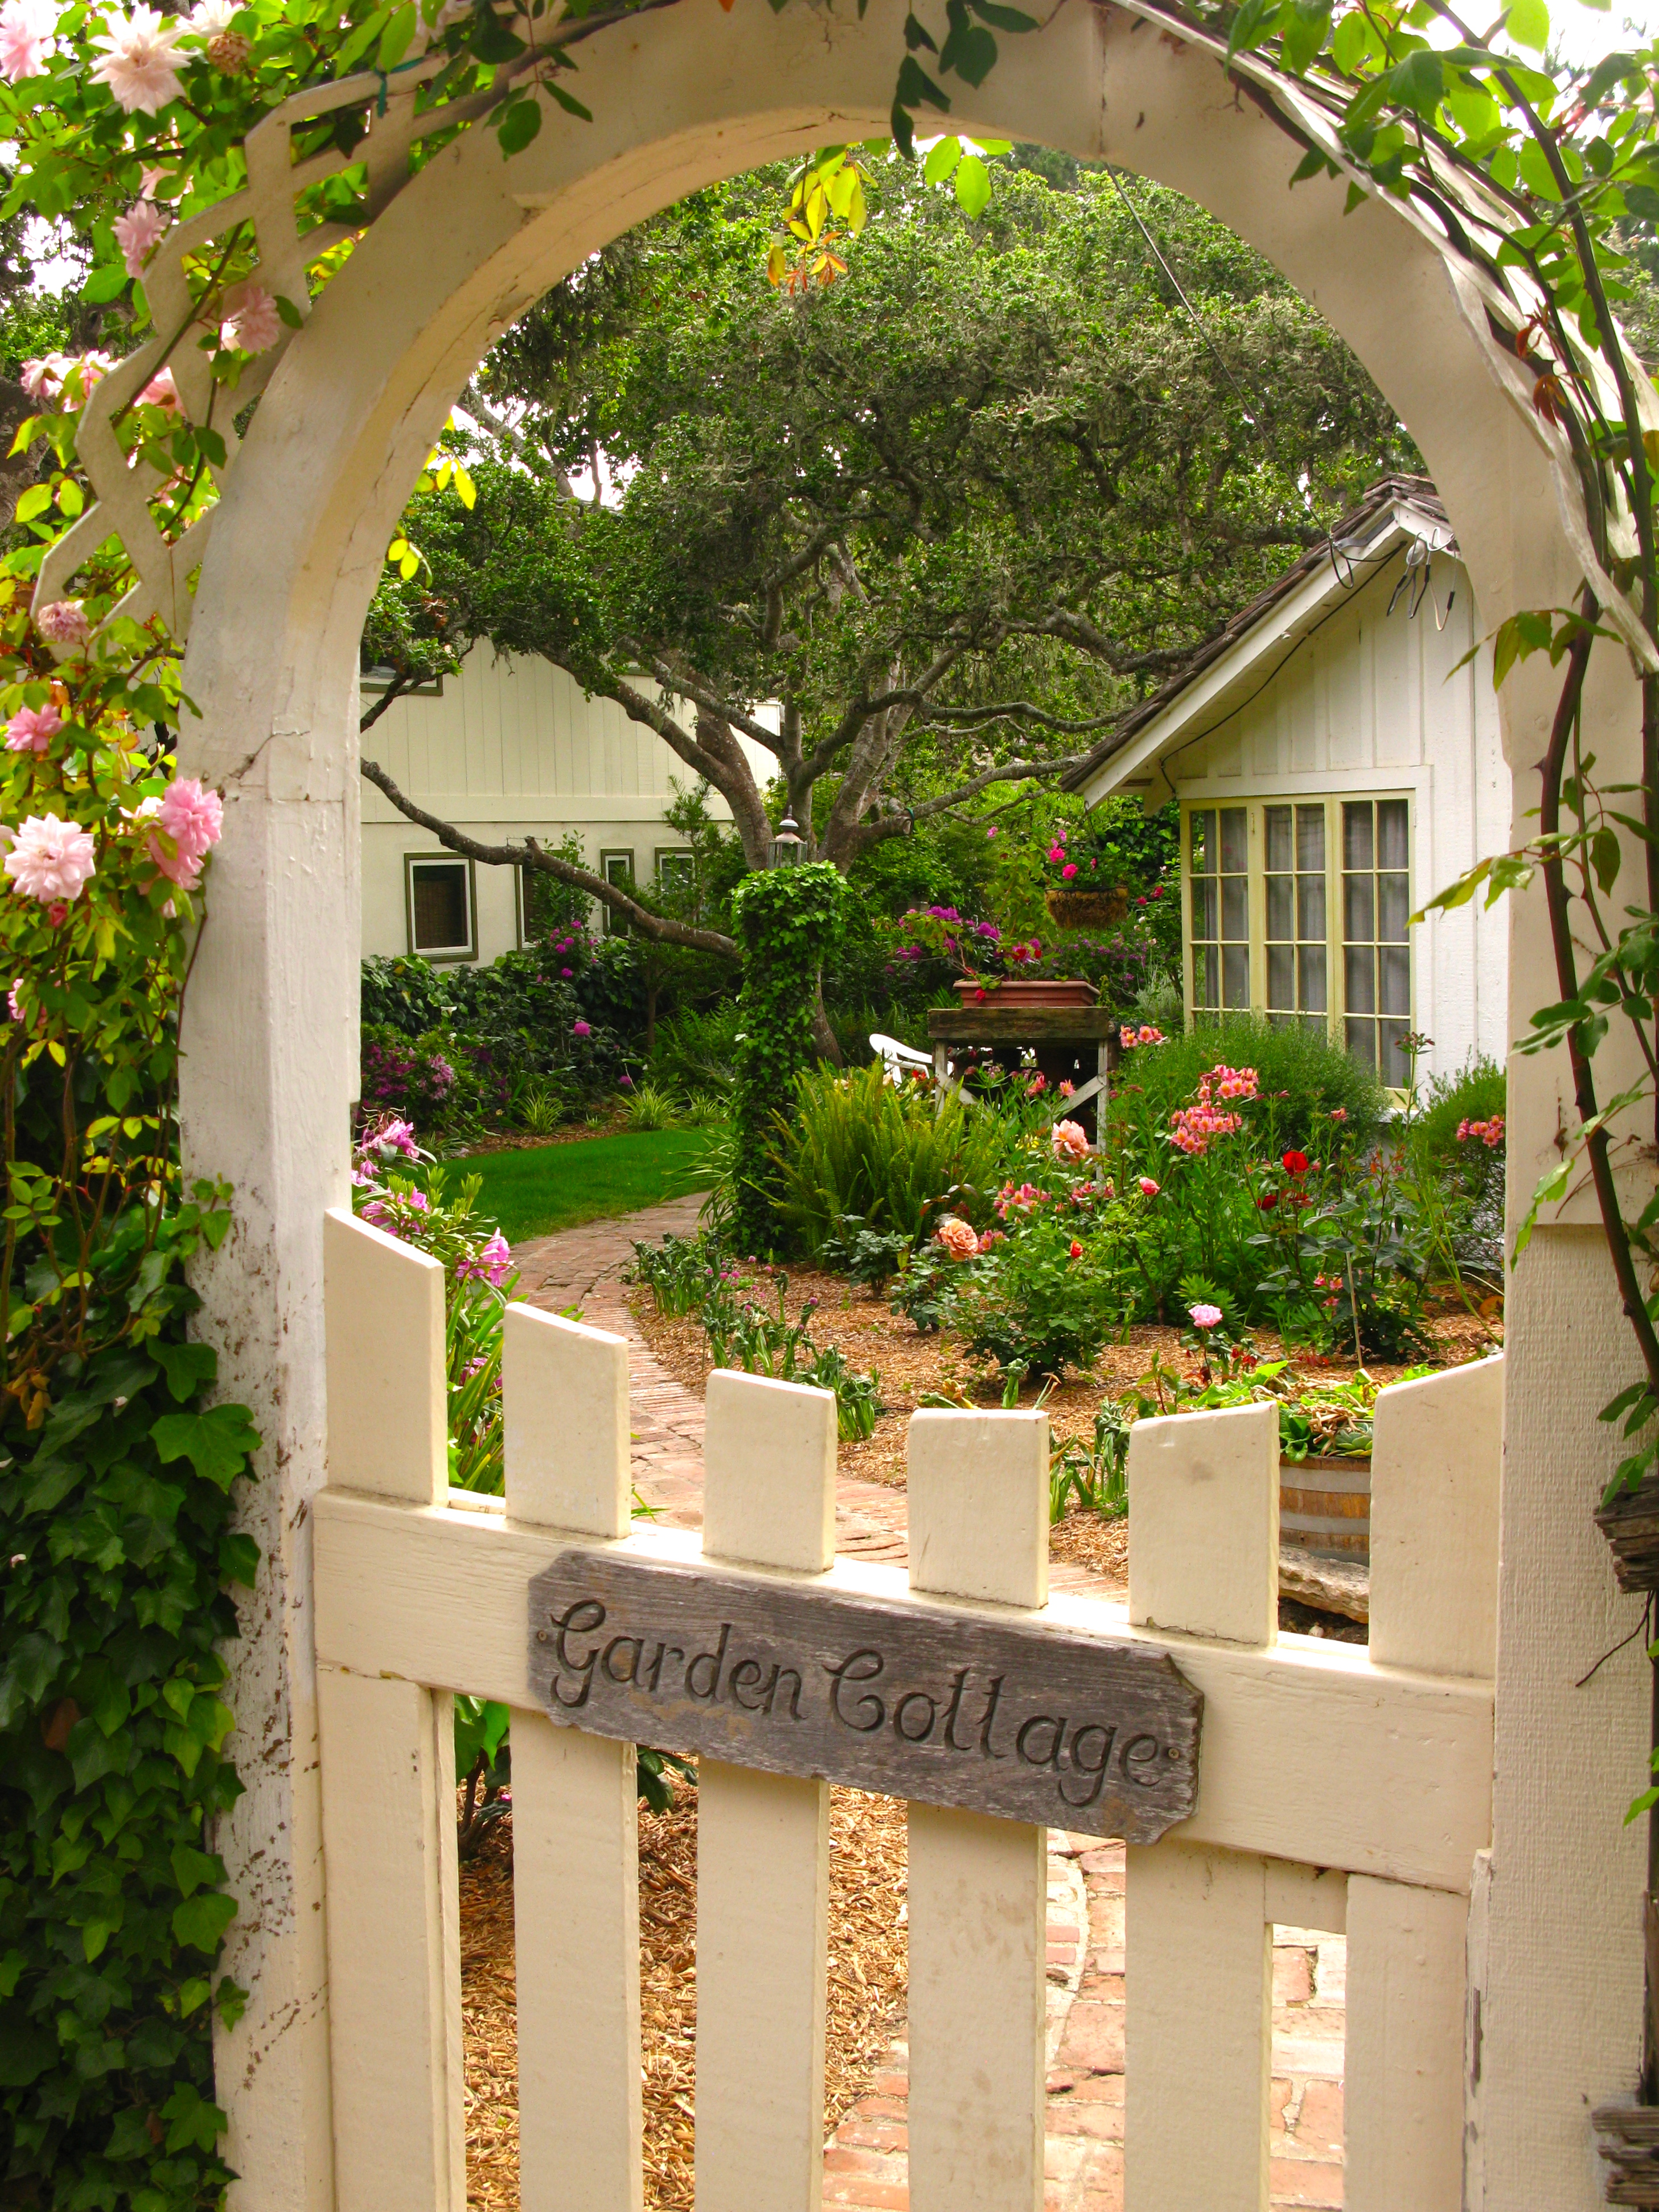 Garden cottage once upon a time tales from carmel by for Rose cottage